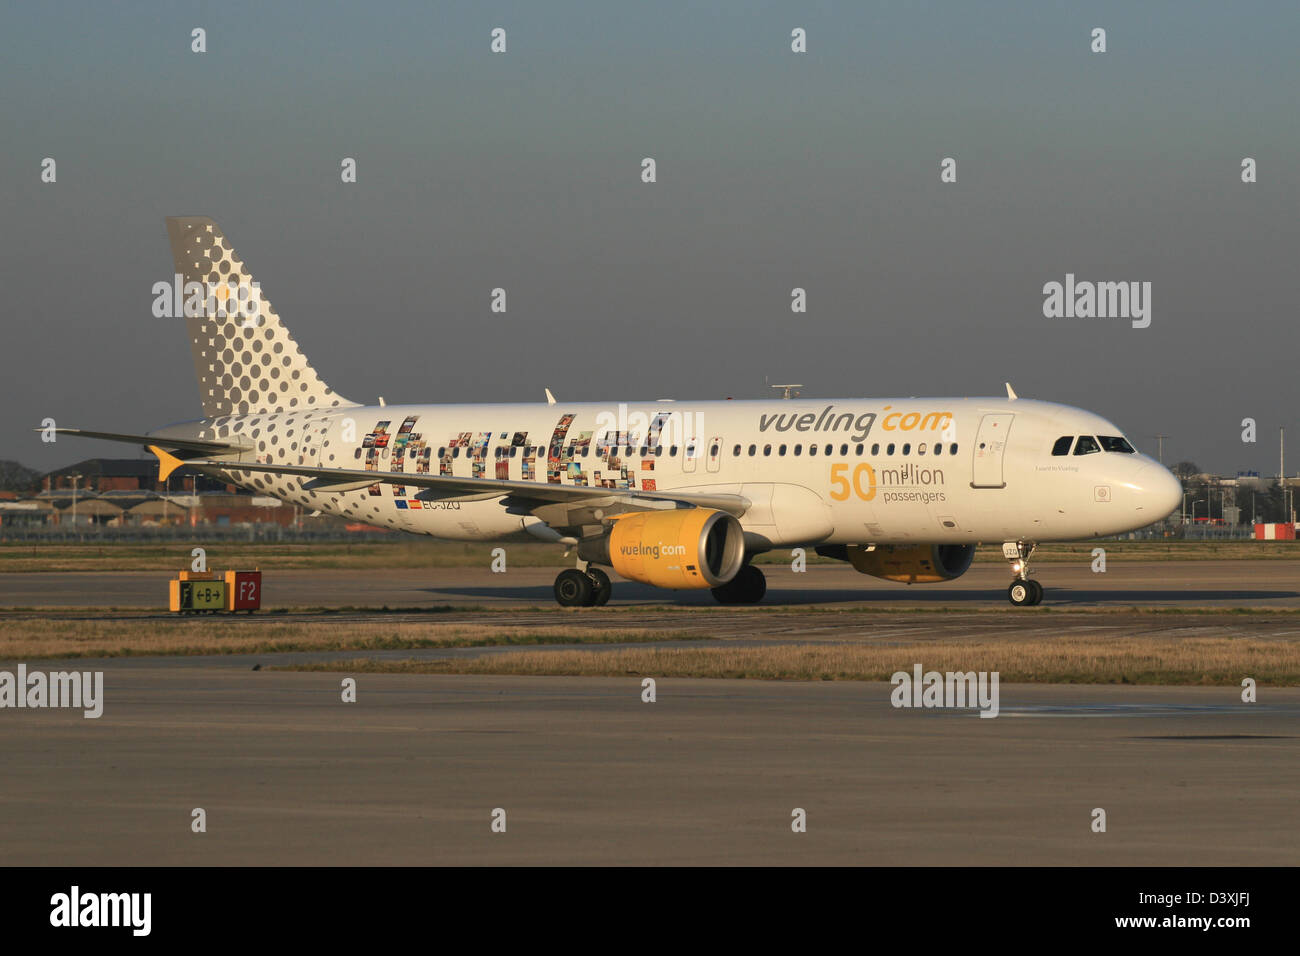 VUELING AIRLINES SPAIN - Stock Image